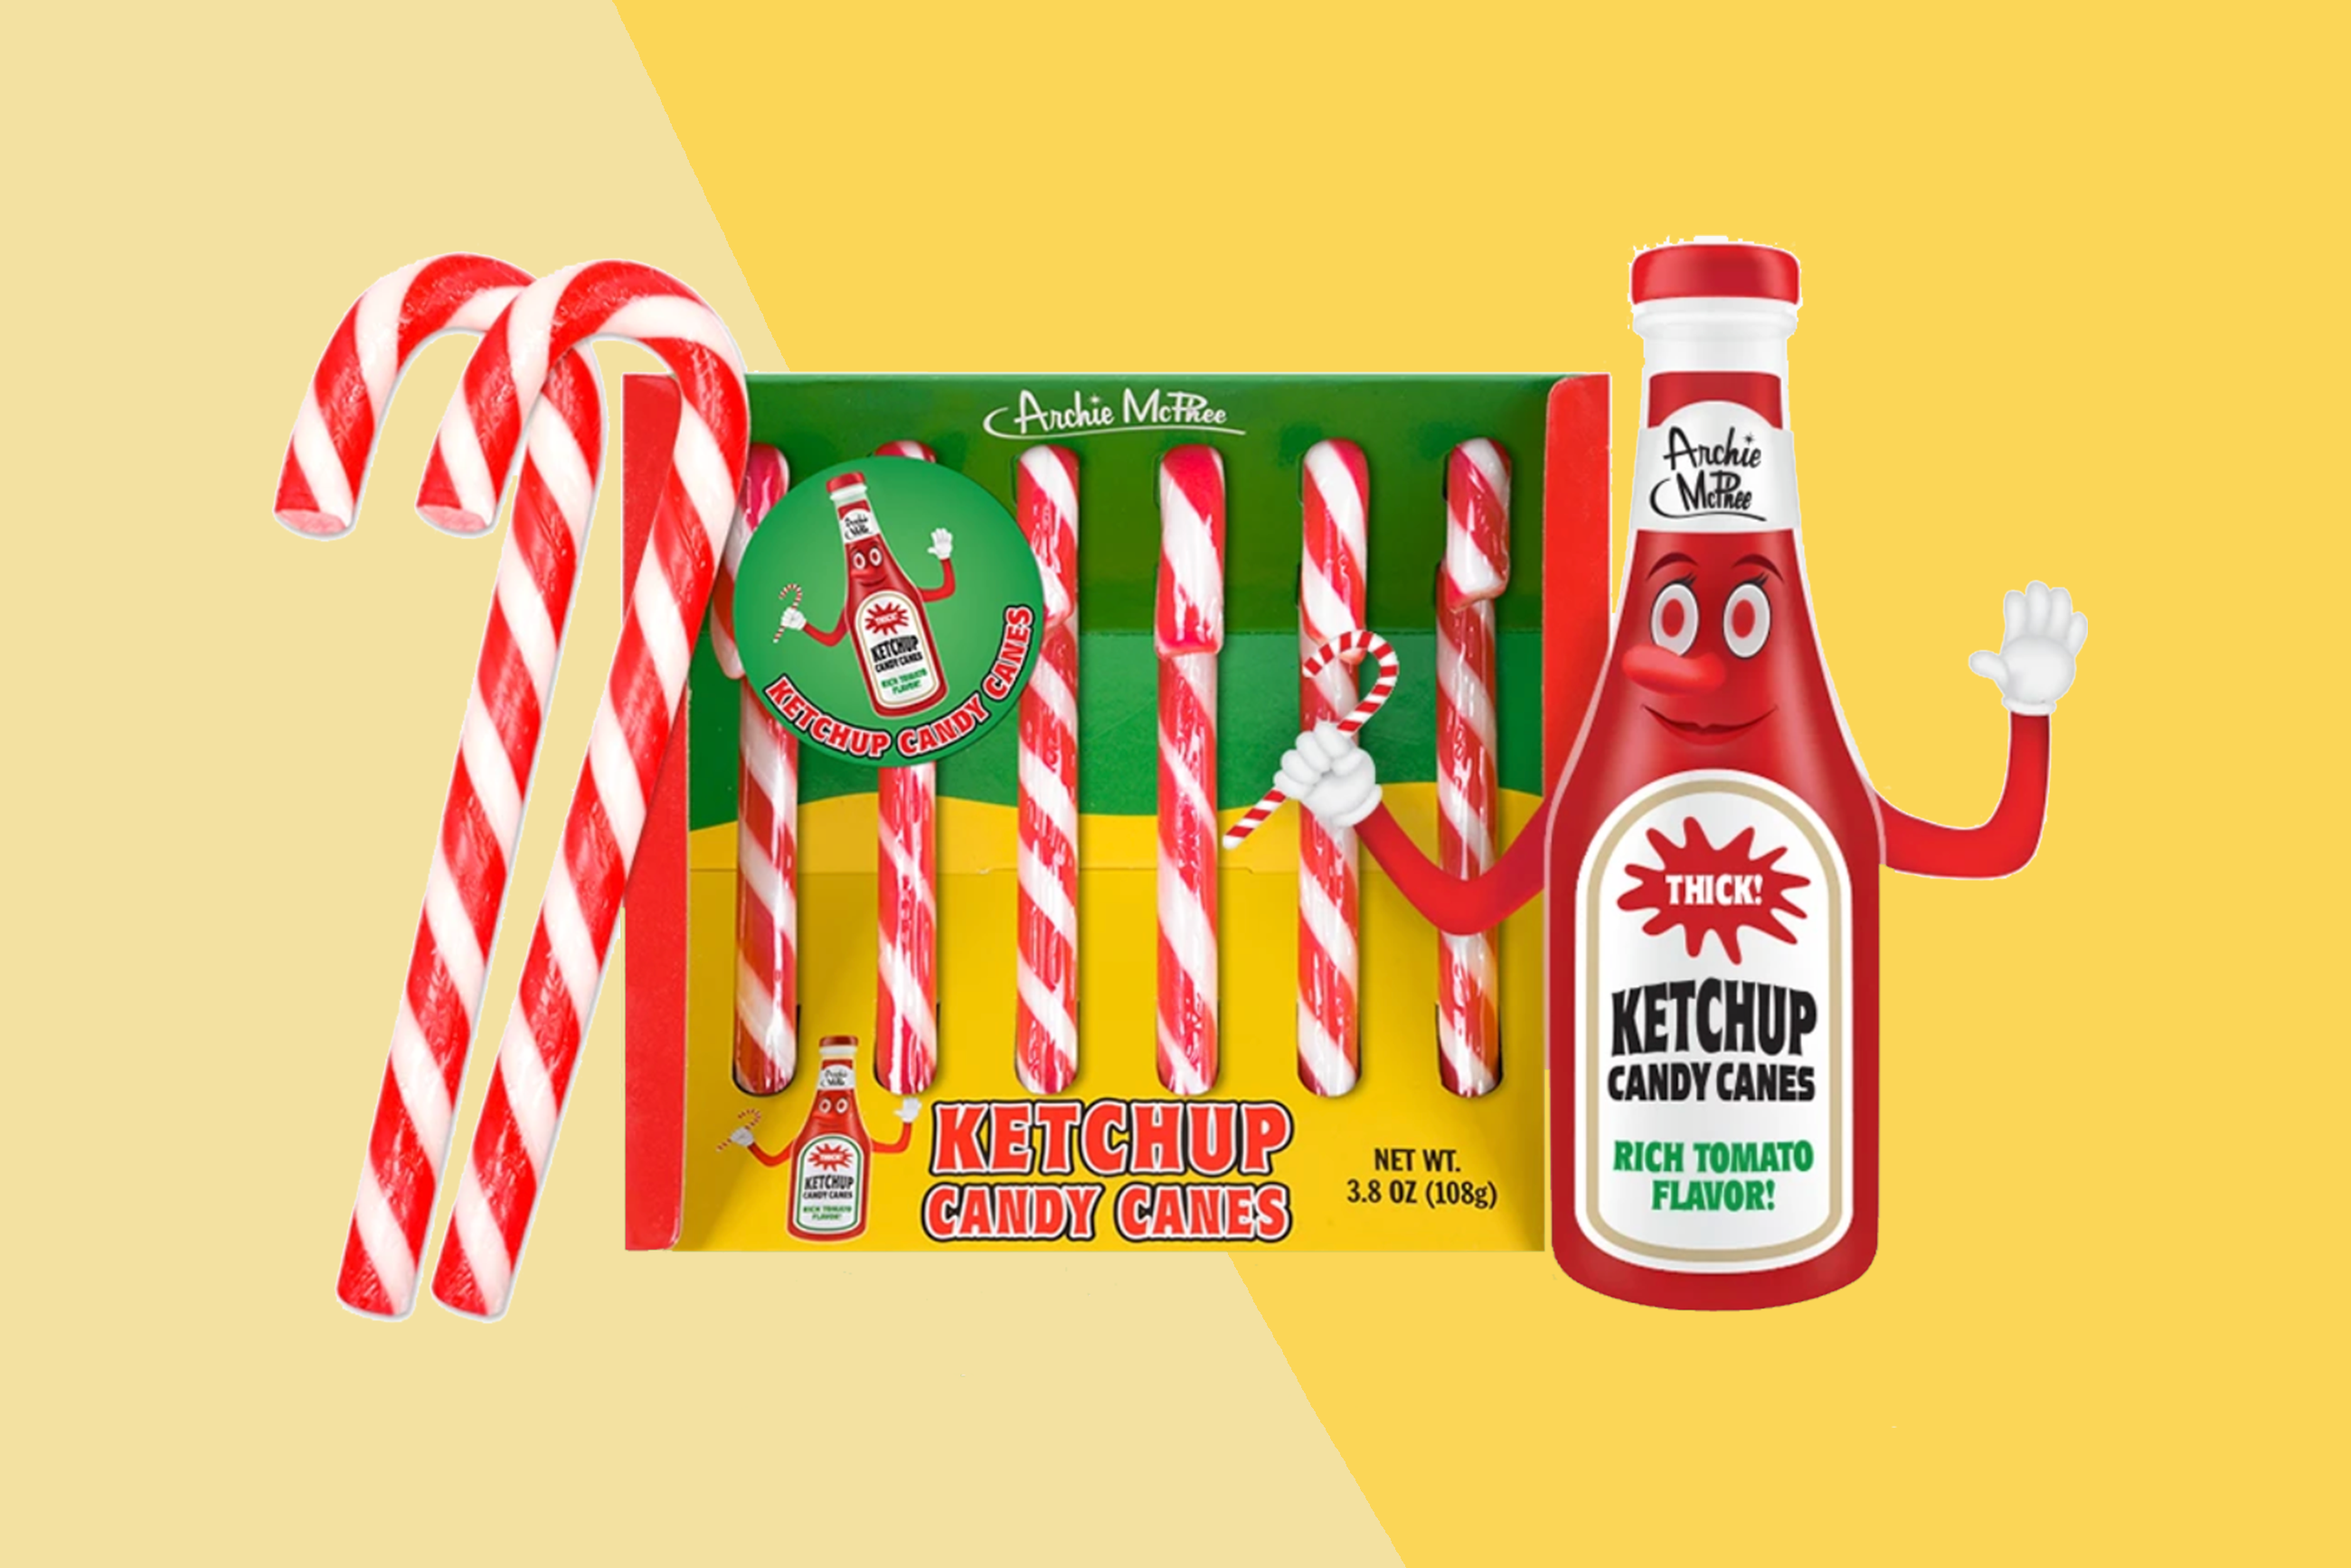 KETCHUP CANDY CANES in a box on a two-tone yellow background with a ketchup bottle mascot